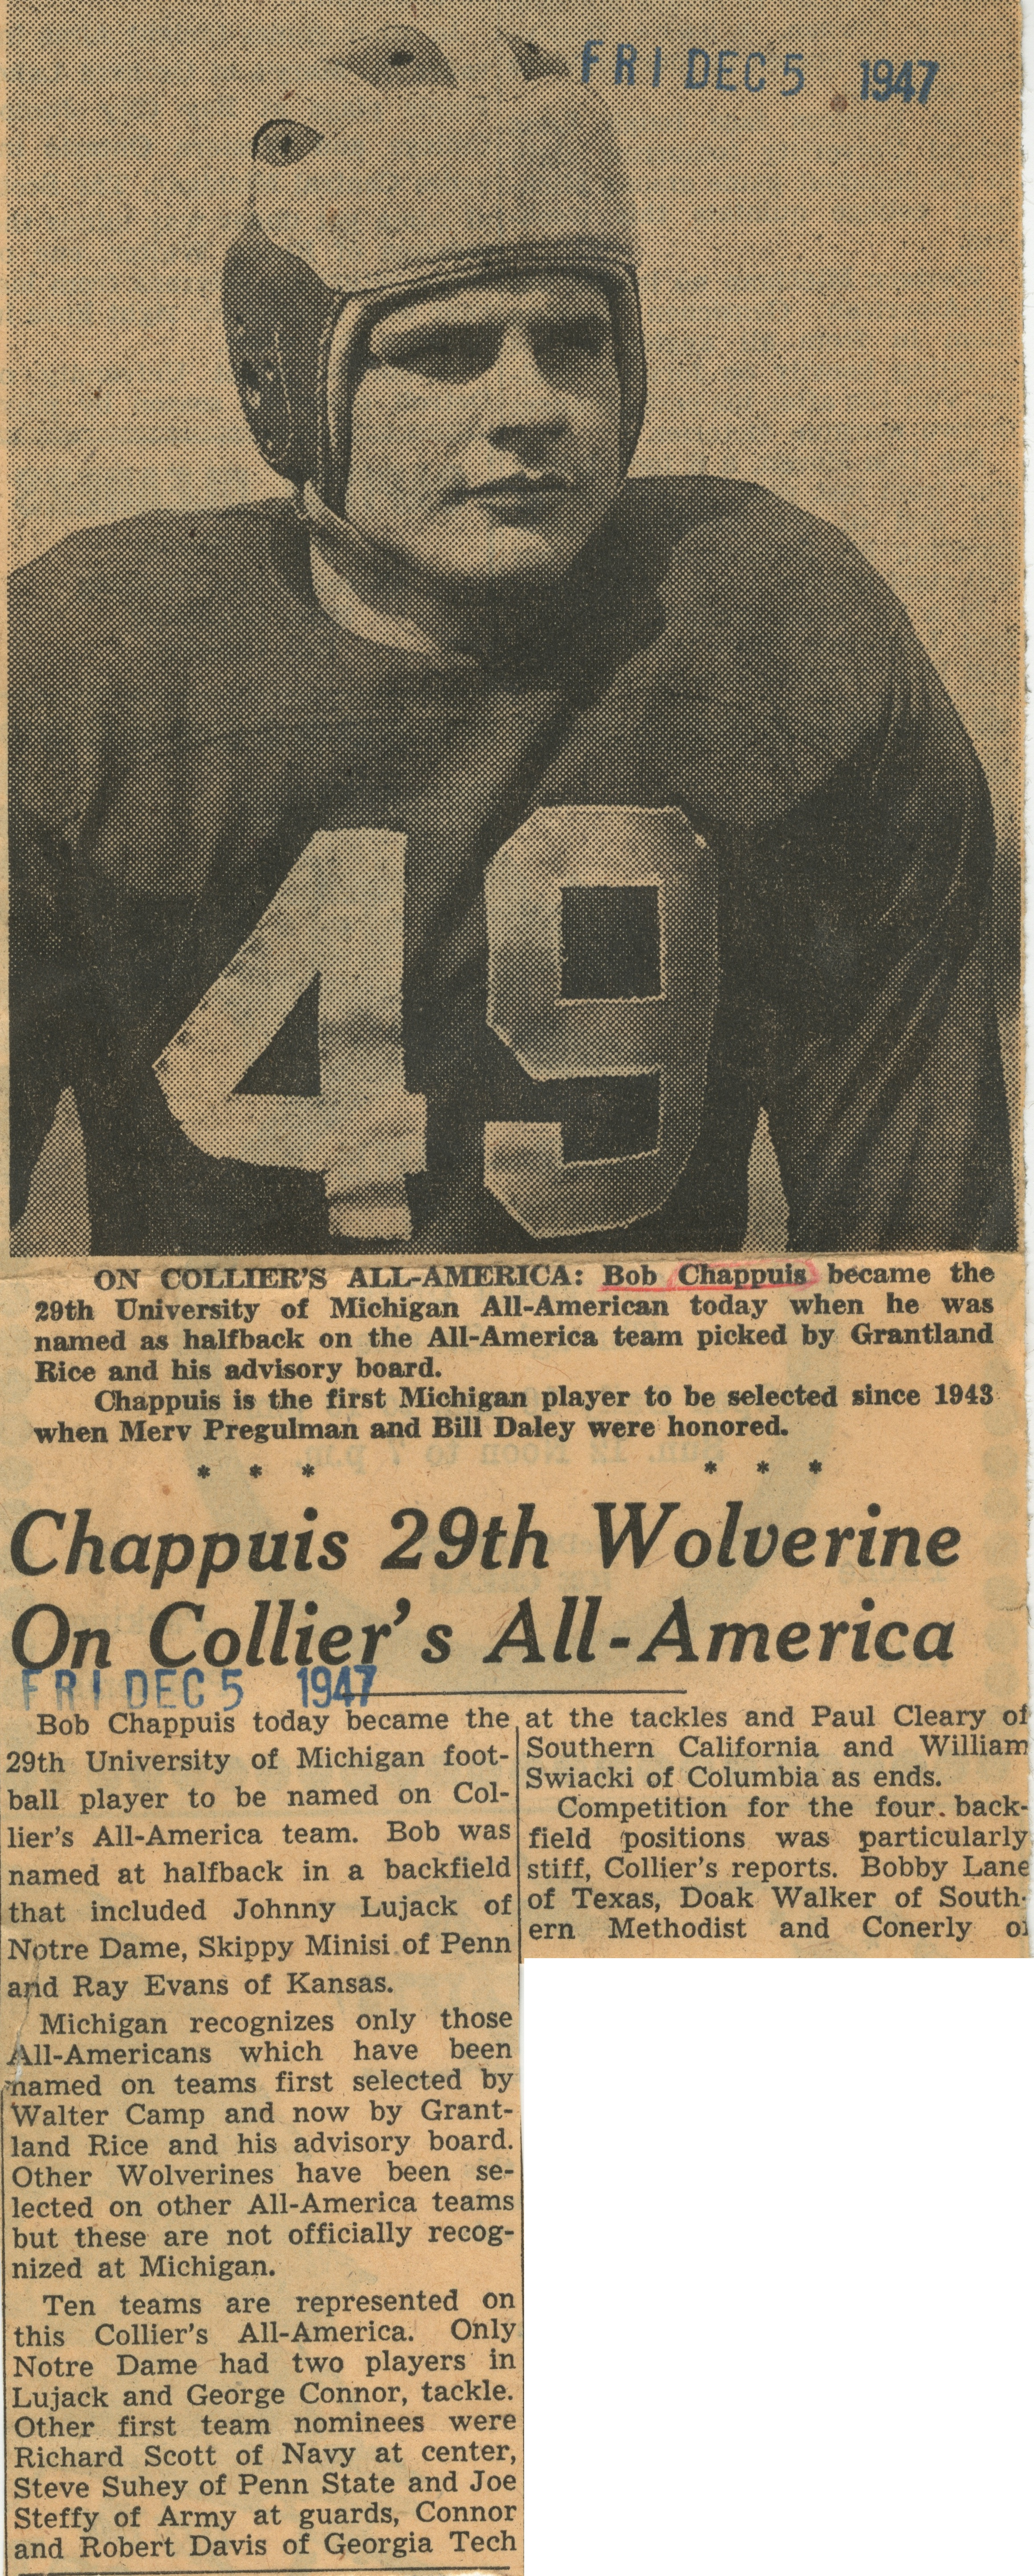 Chappuis 29th Wolverine on Collier's All-America image